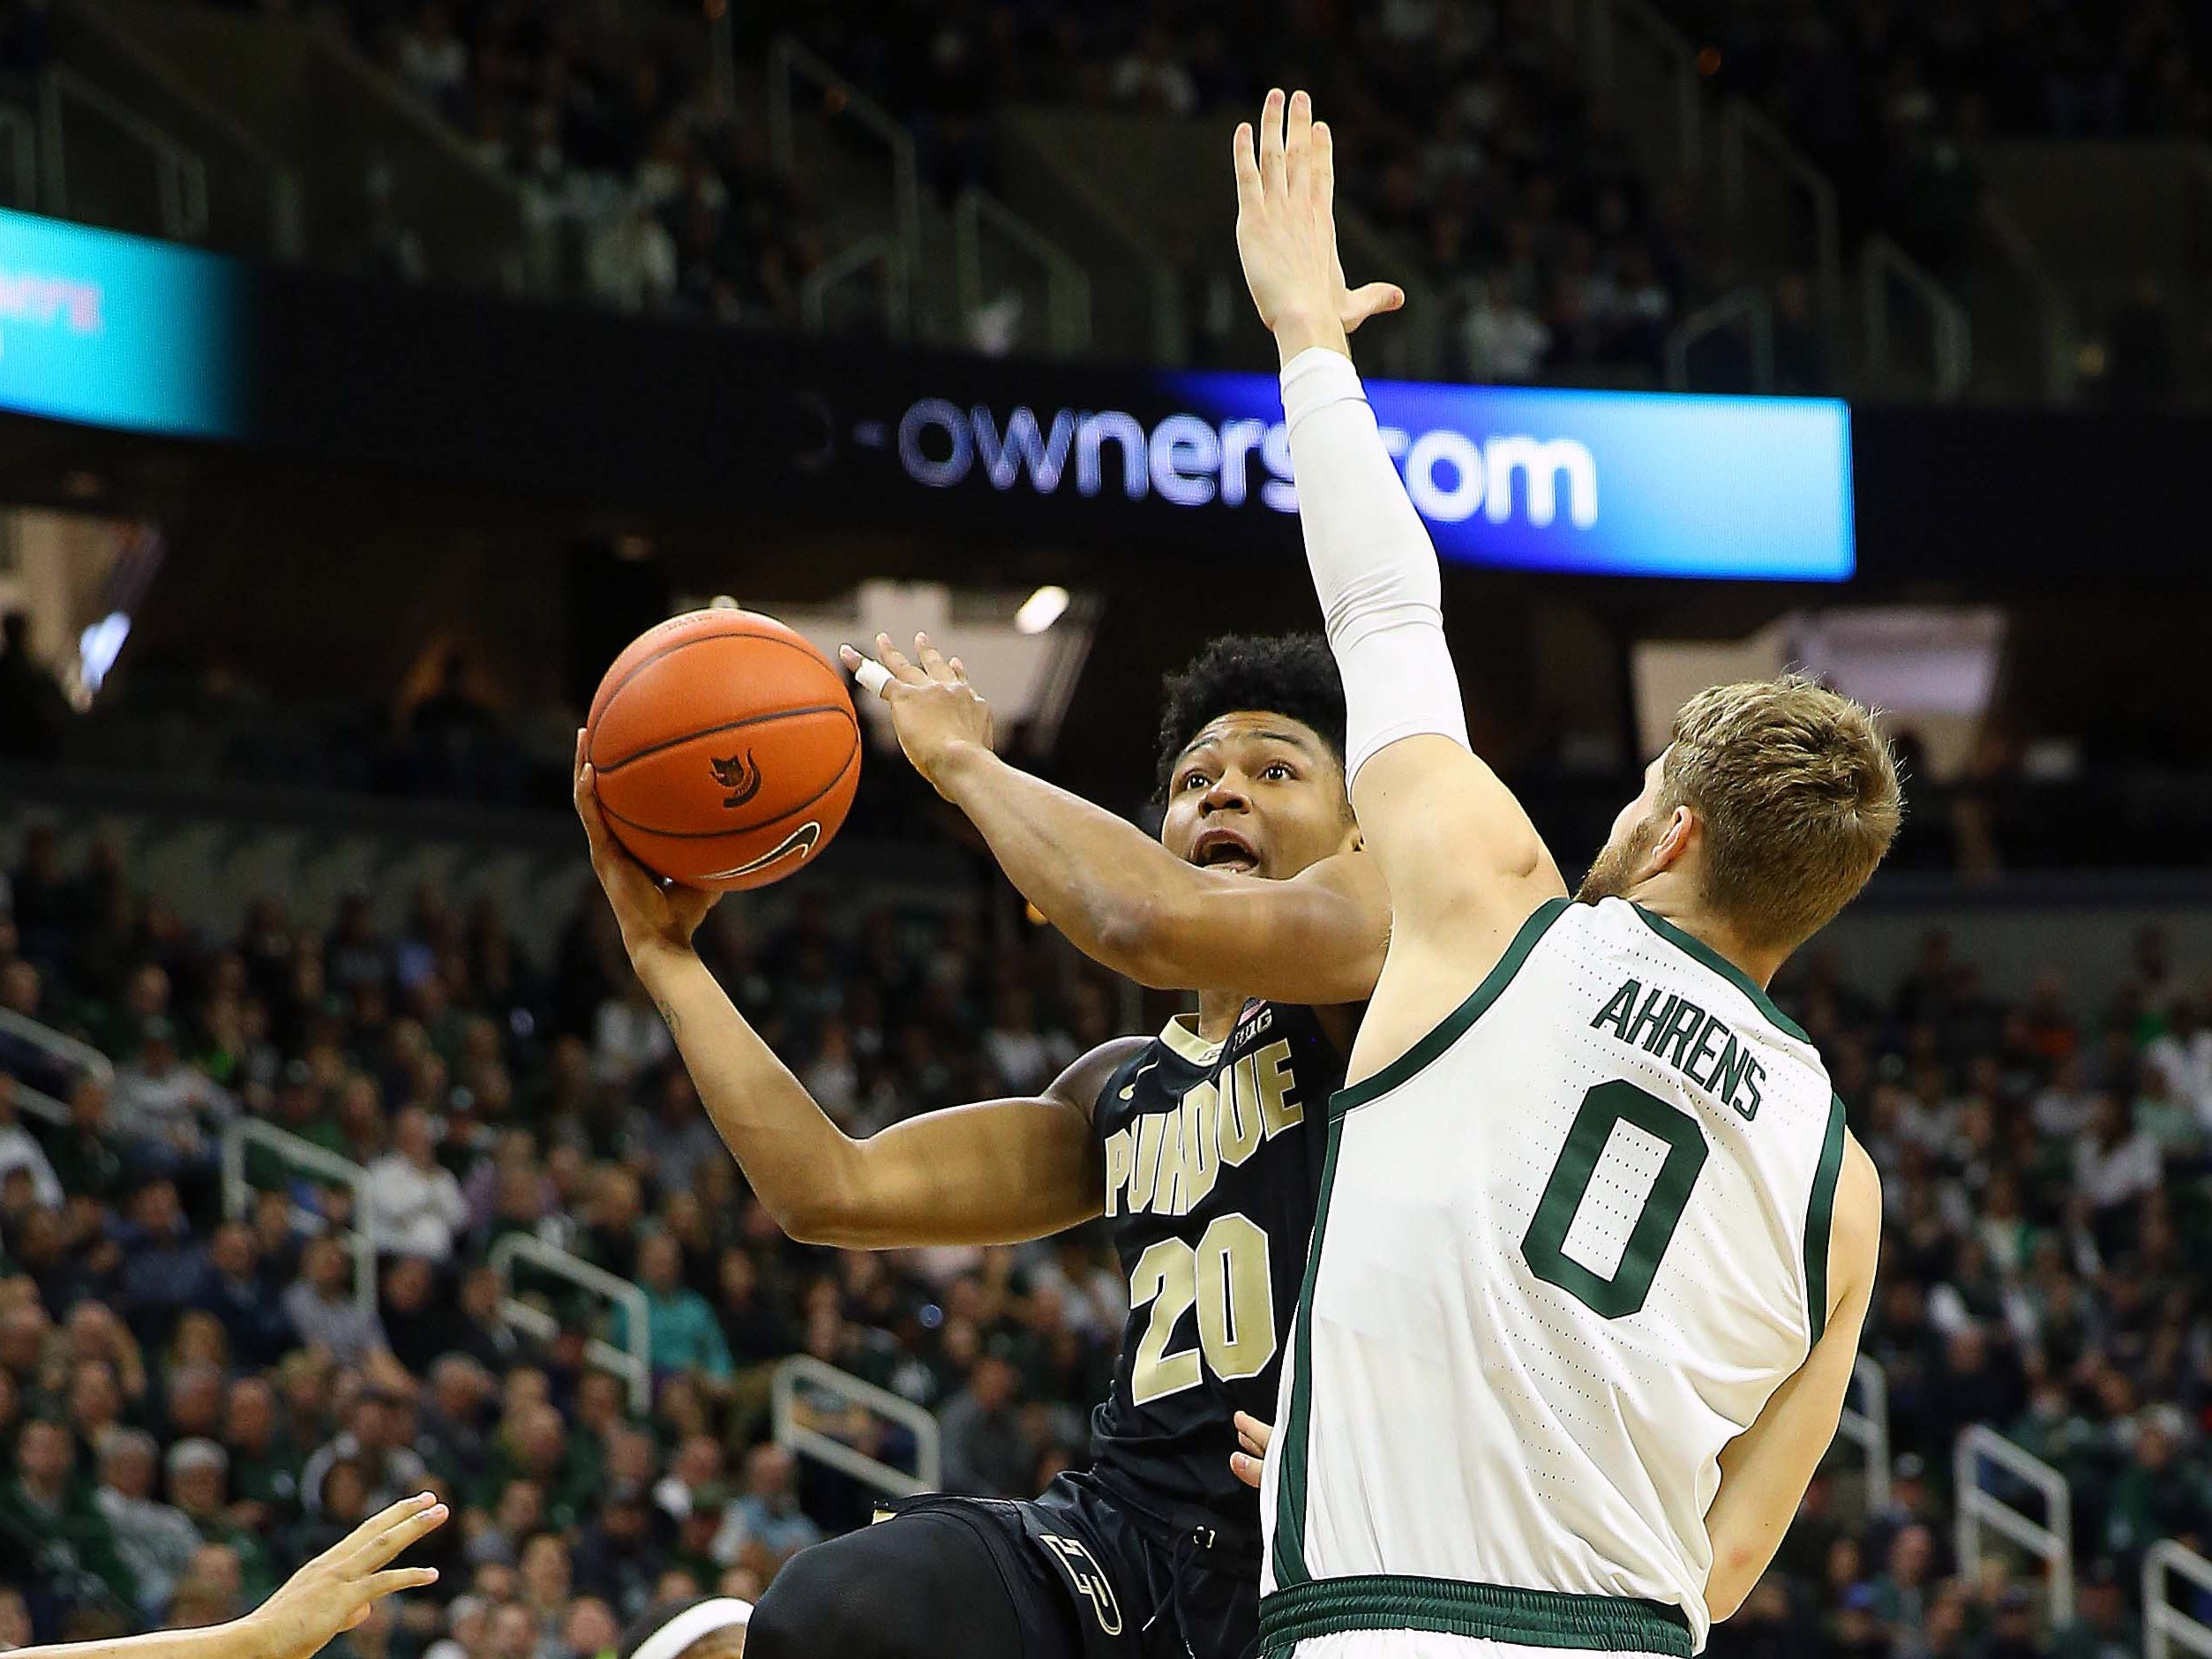 Purdue Boilermakers guard Nojel Eastern (20) drive the lane against Michigan State Spartans forward Kyle Ahrens (0) during the first half of a game at the Breslin Center.